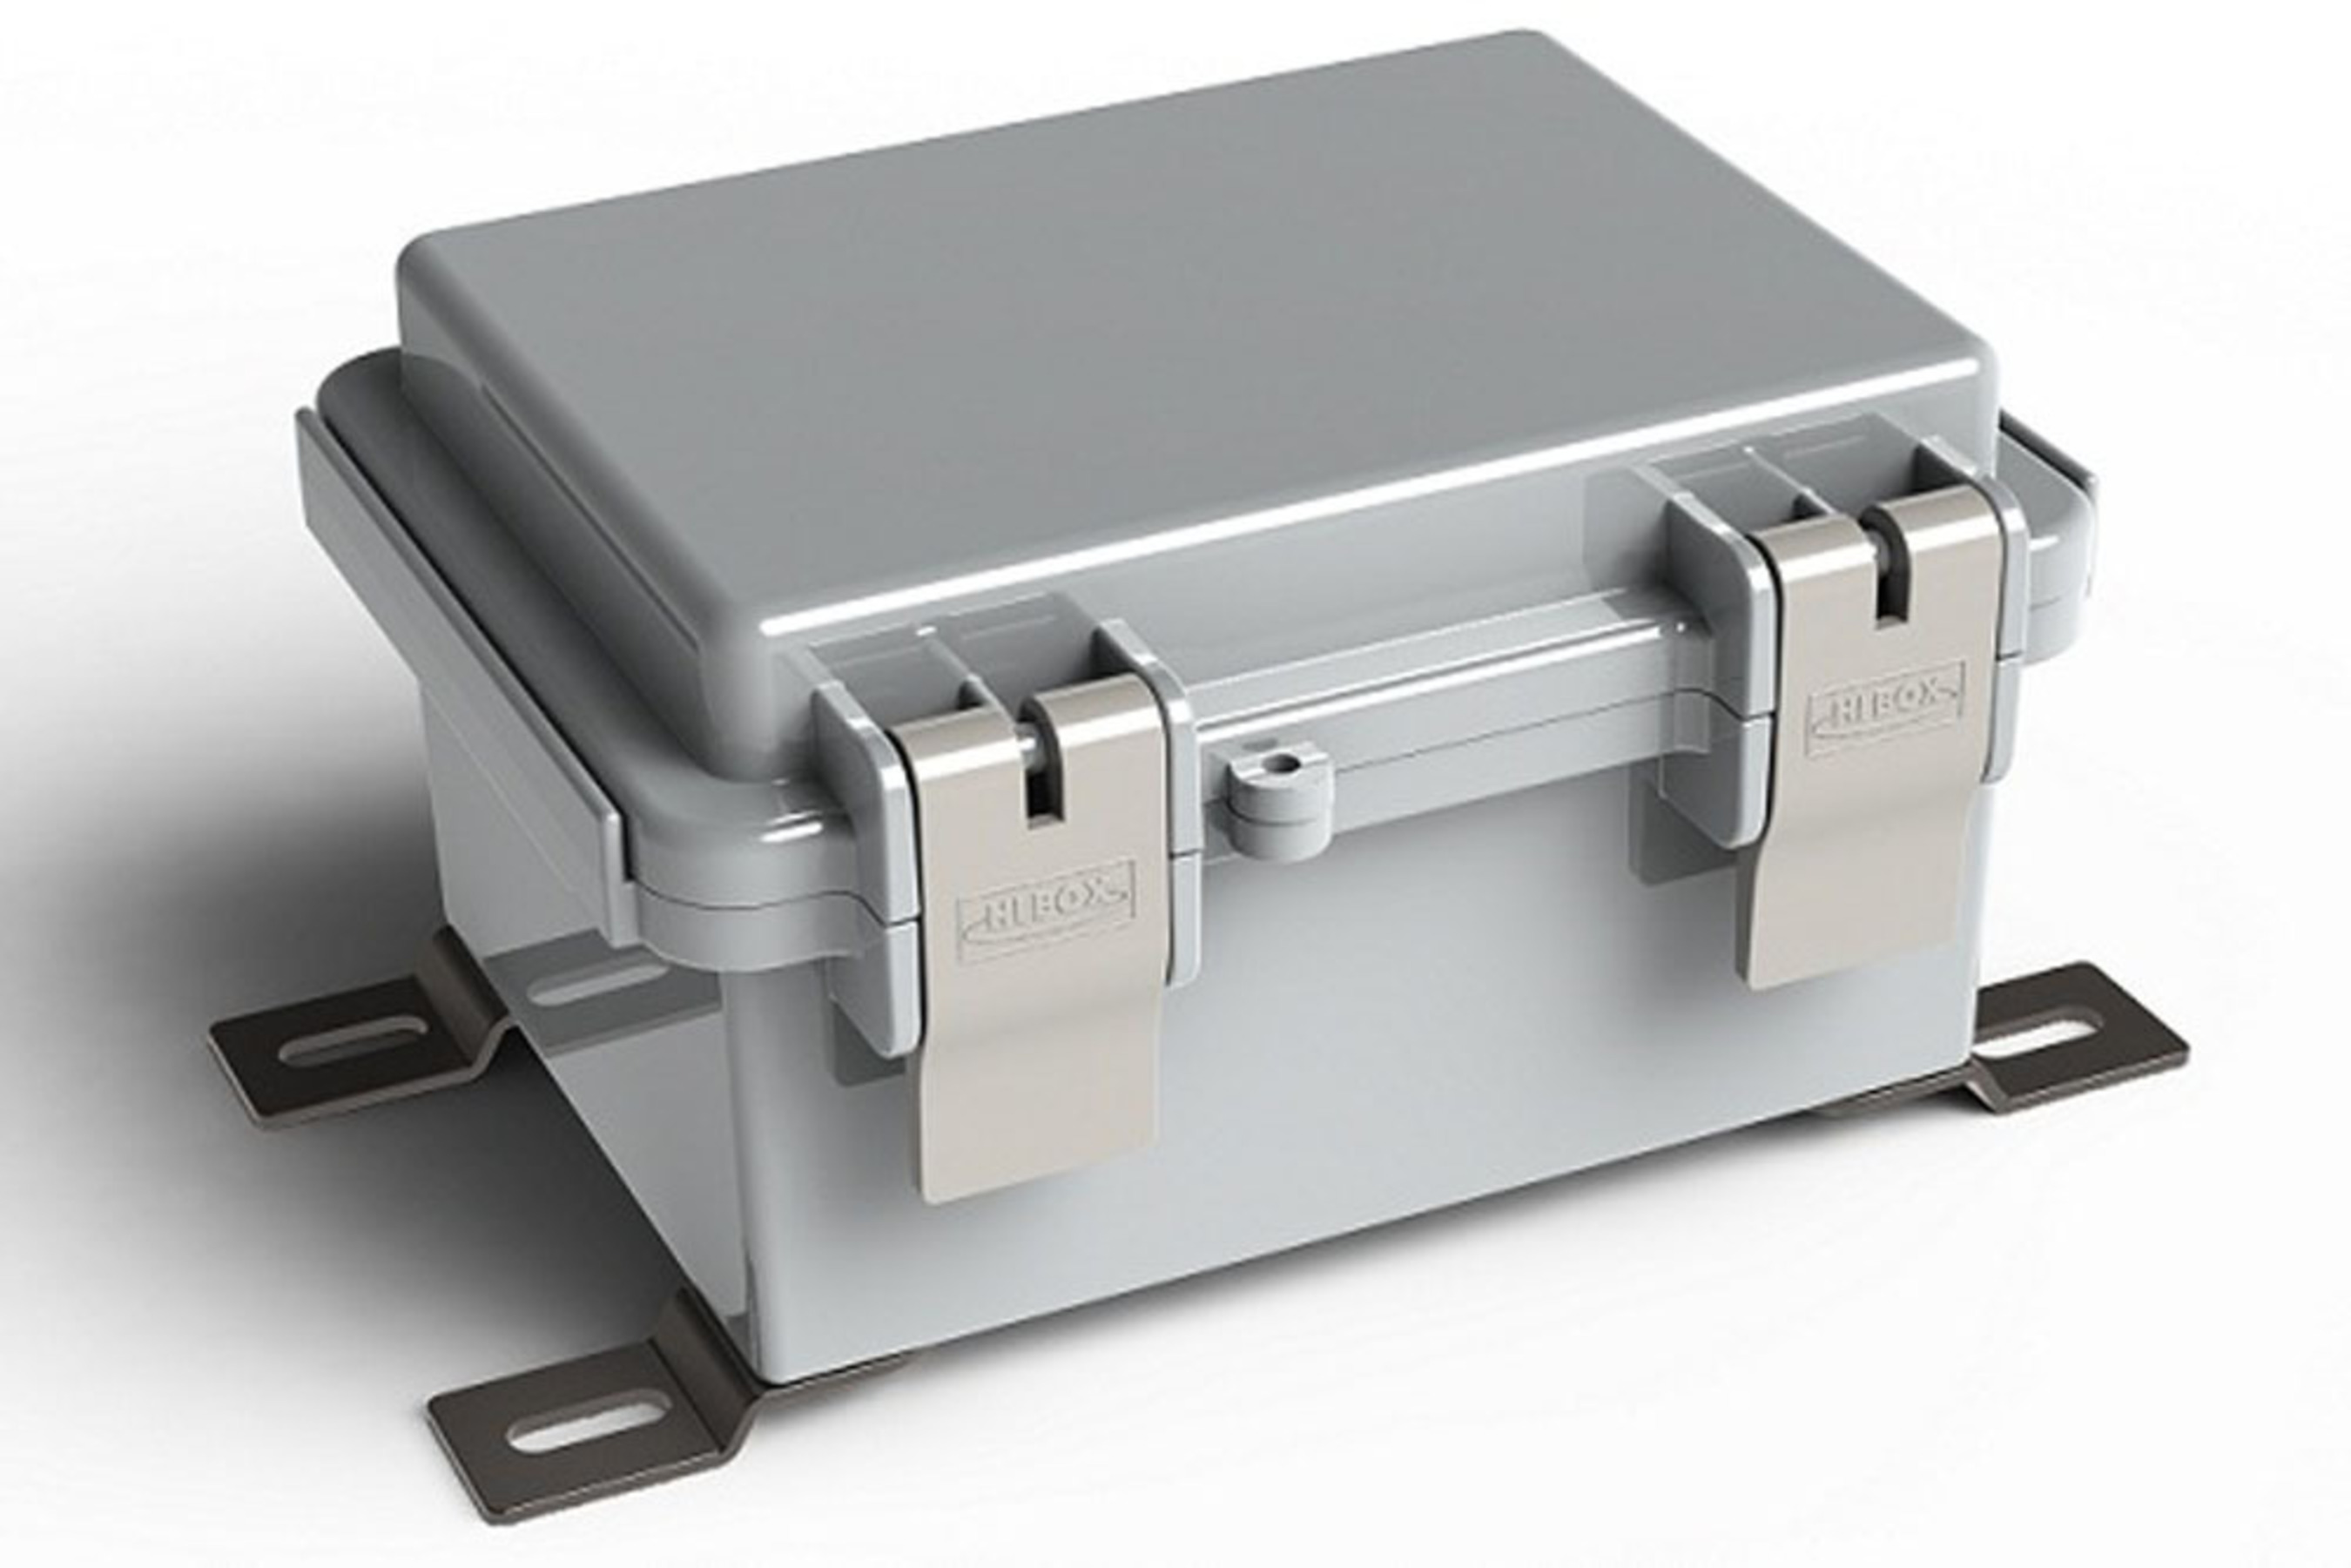 Hinged Electrical Box : Polycase announces new hinged nema electrical